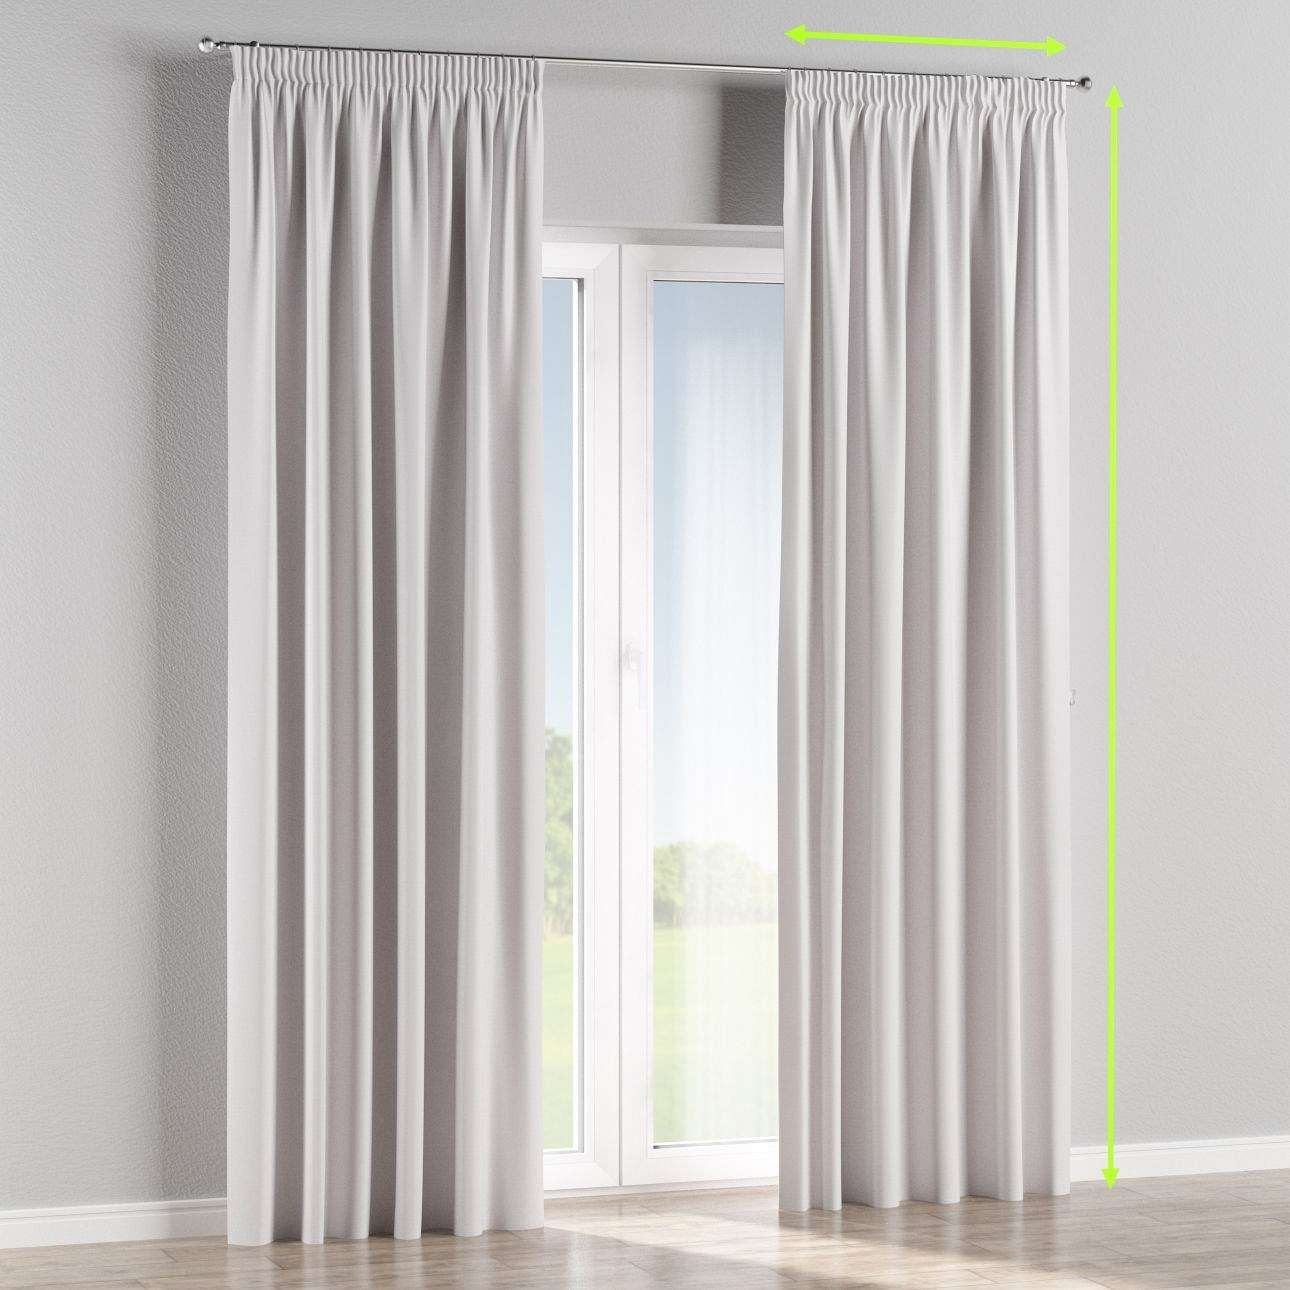 Pencil pleat curtains in collection Blackout, fabric: 269-65